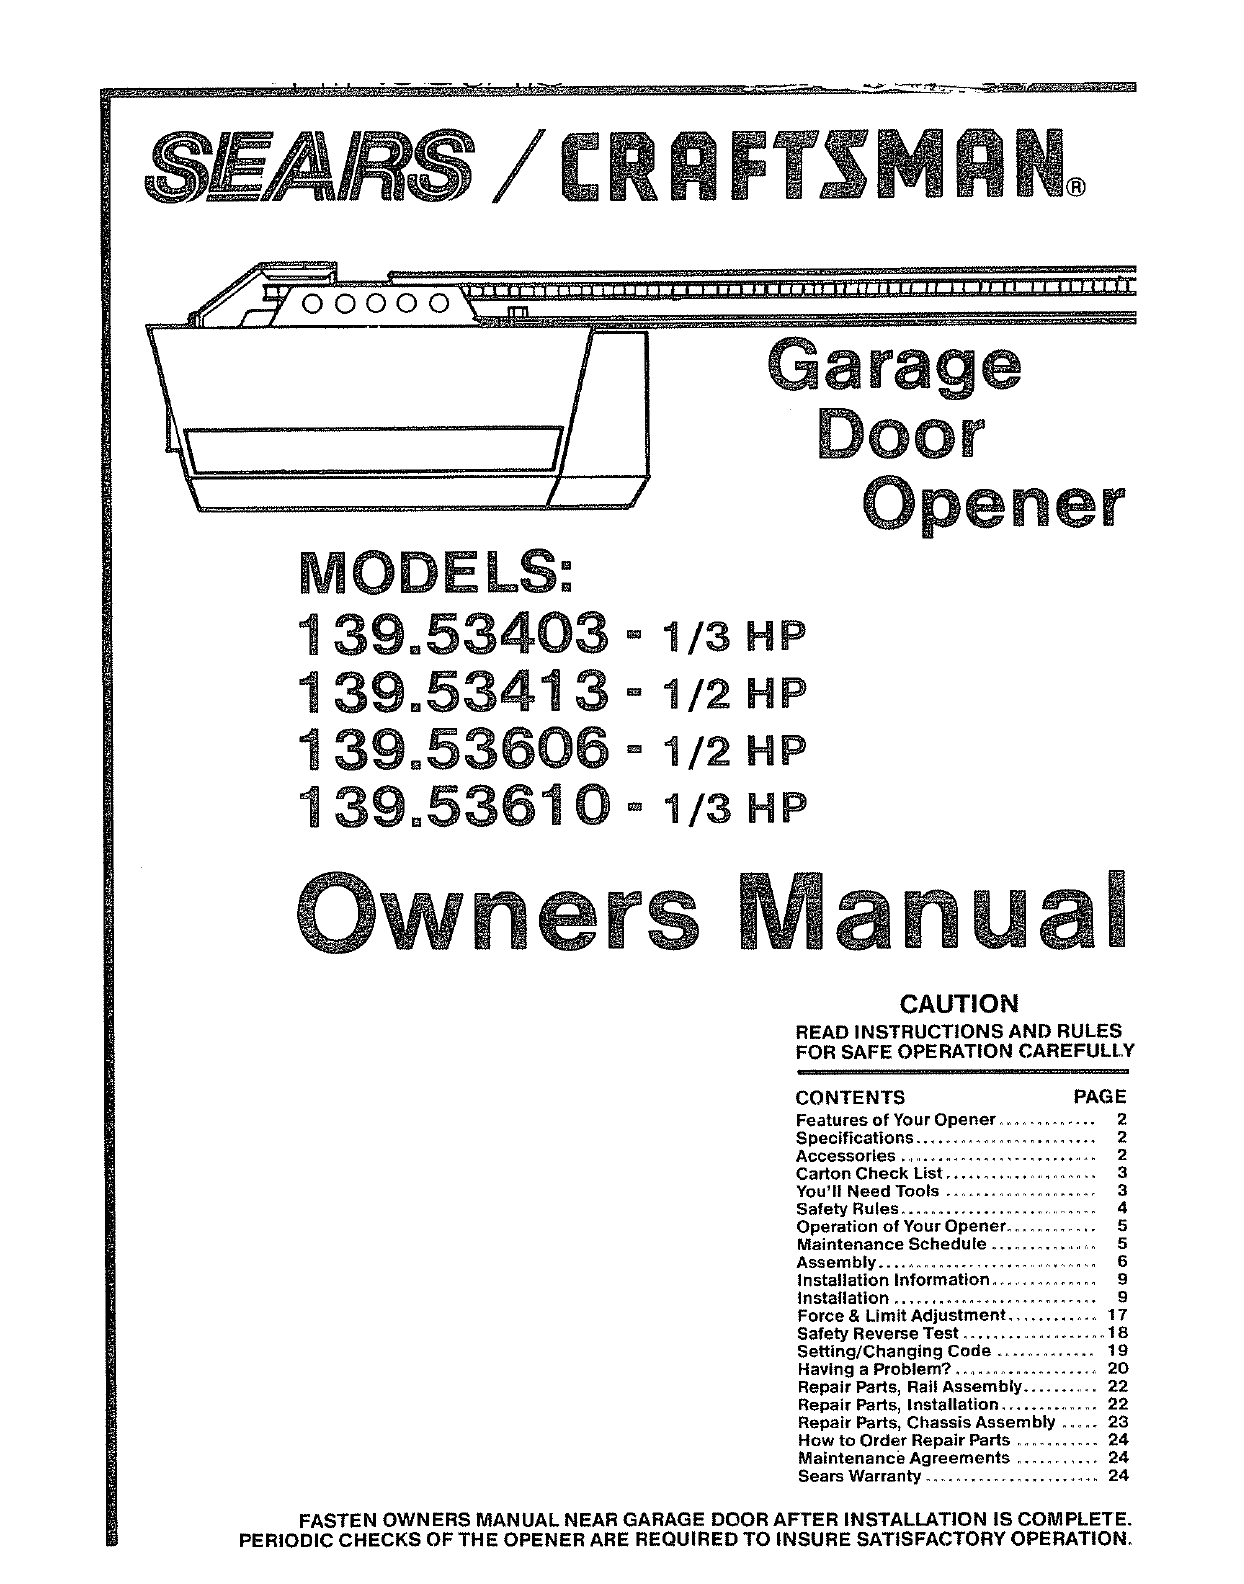 Craftsman Garage Door Opener Wiring Diagram To Sears Craftsman inside Craftsman Garage Door Opener Parts Diagram